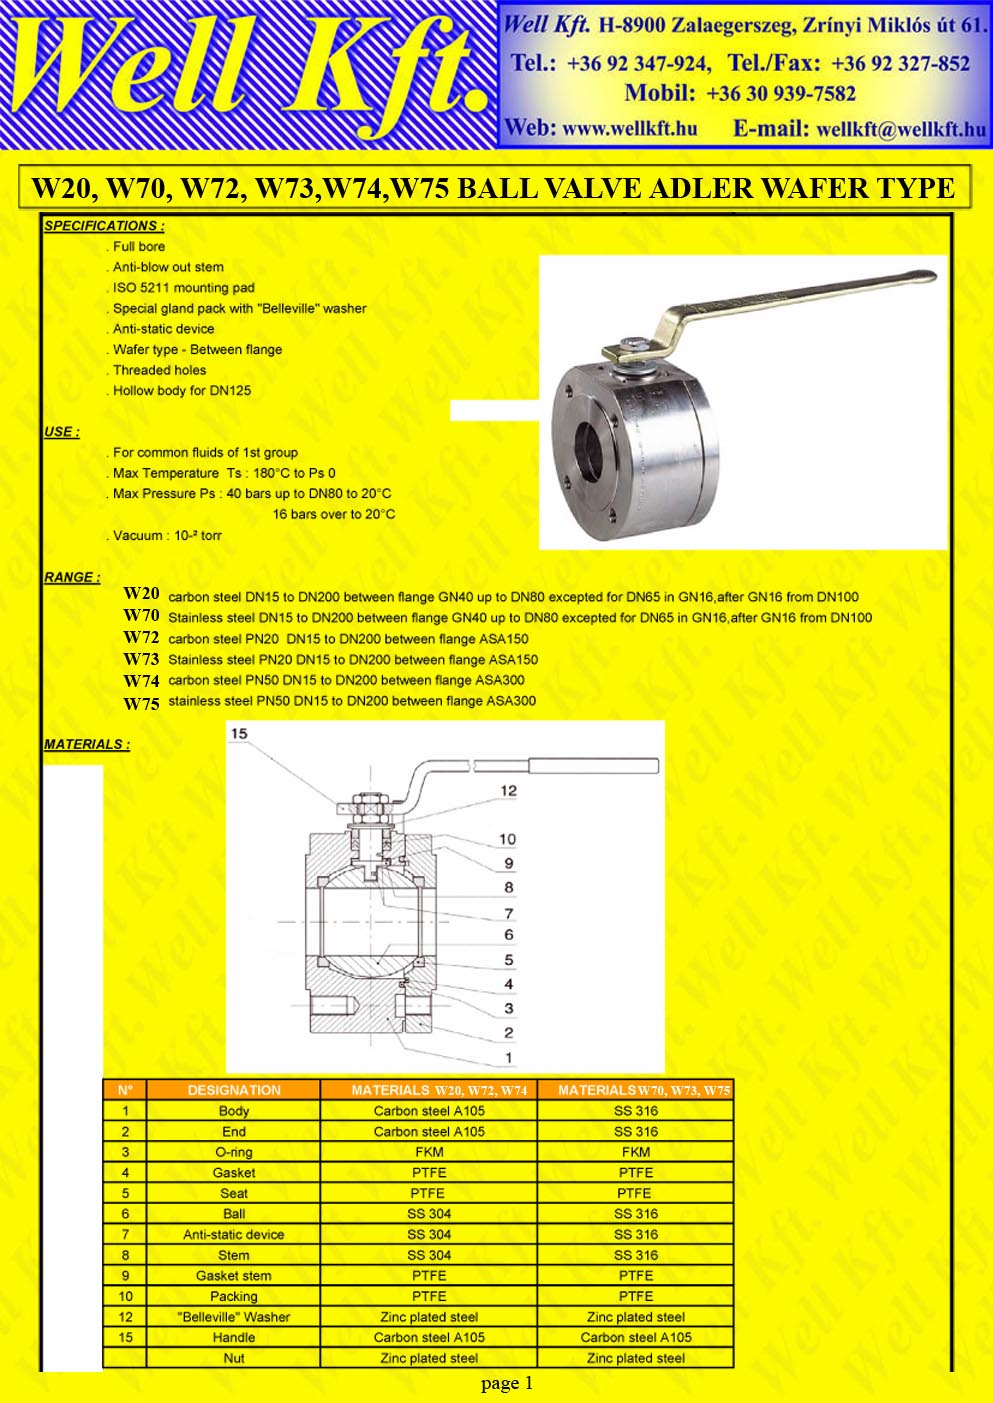 Wafer ball valve stainless steel, carbon steel, ISO pad (1.)